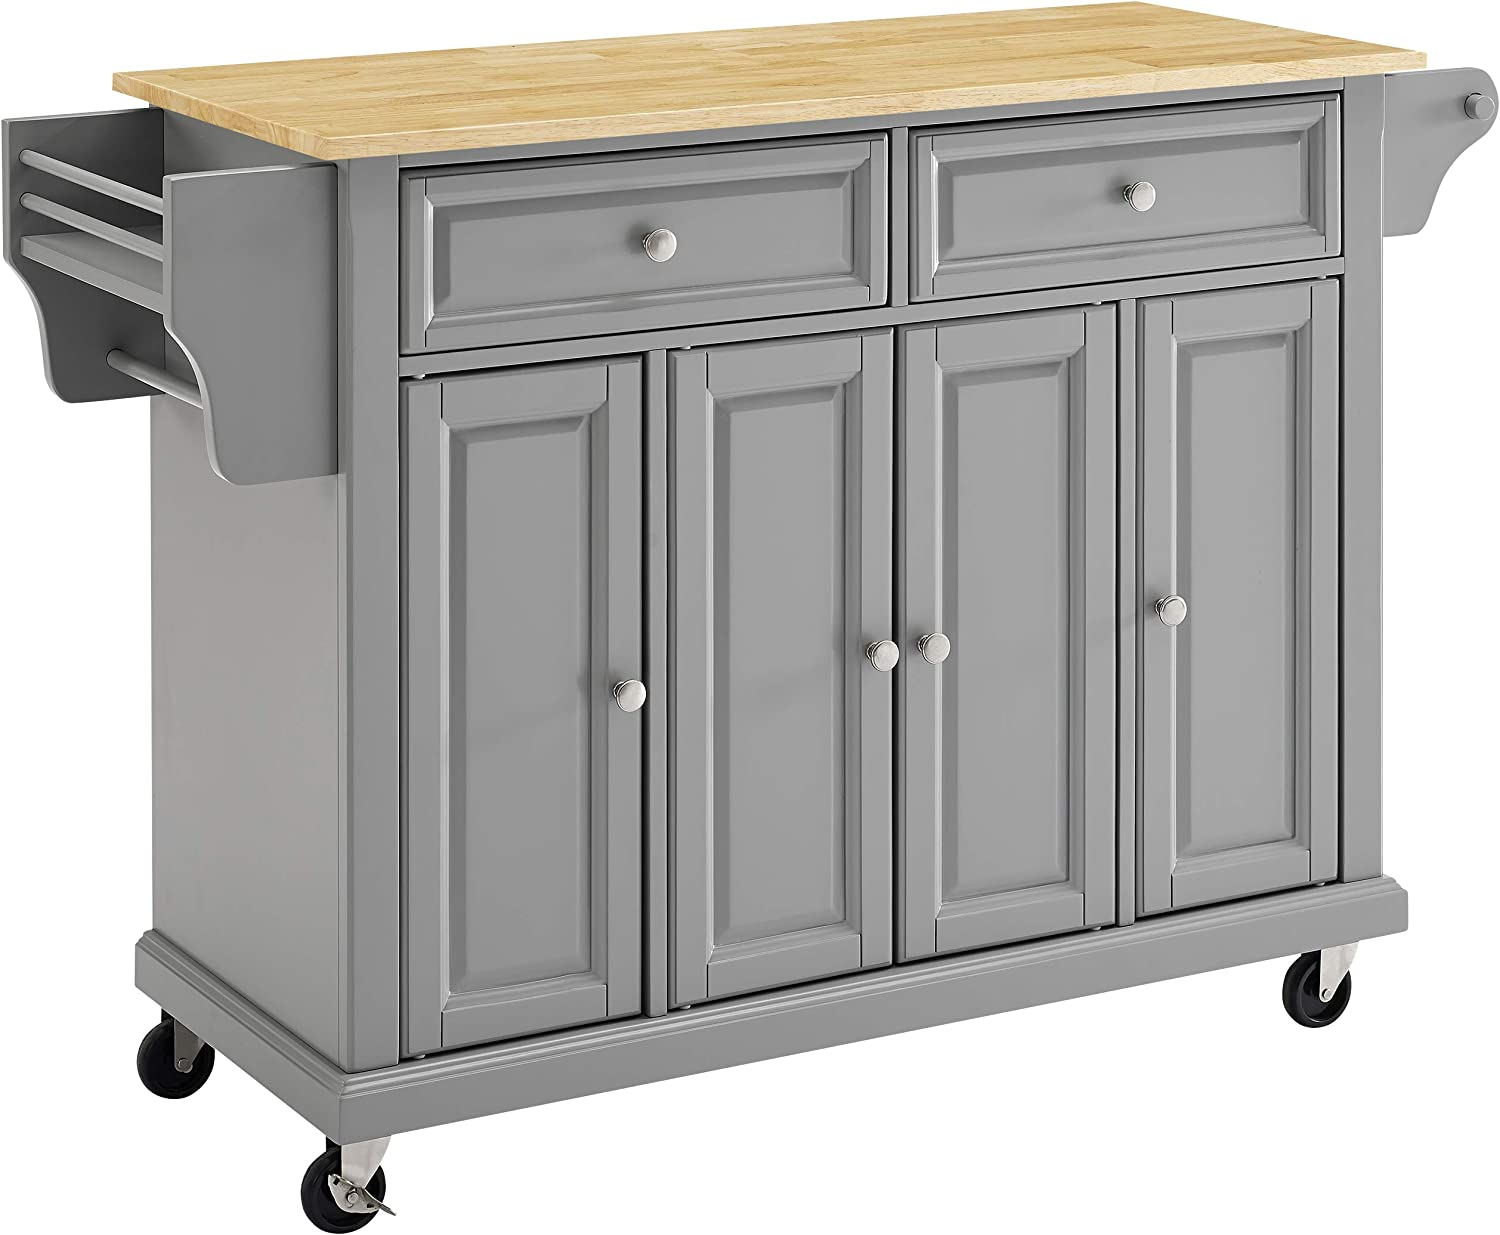 Crosley Furniture Full Size Kitchen Cart with Natural Wood Top, Gray